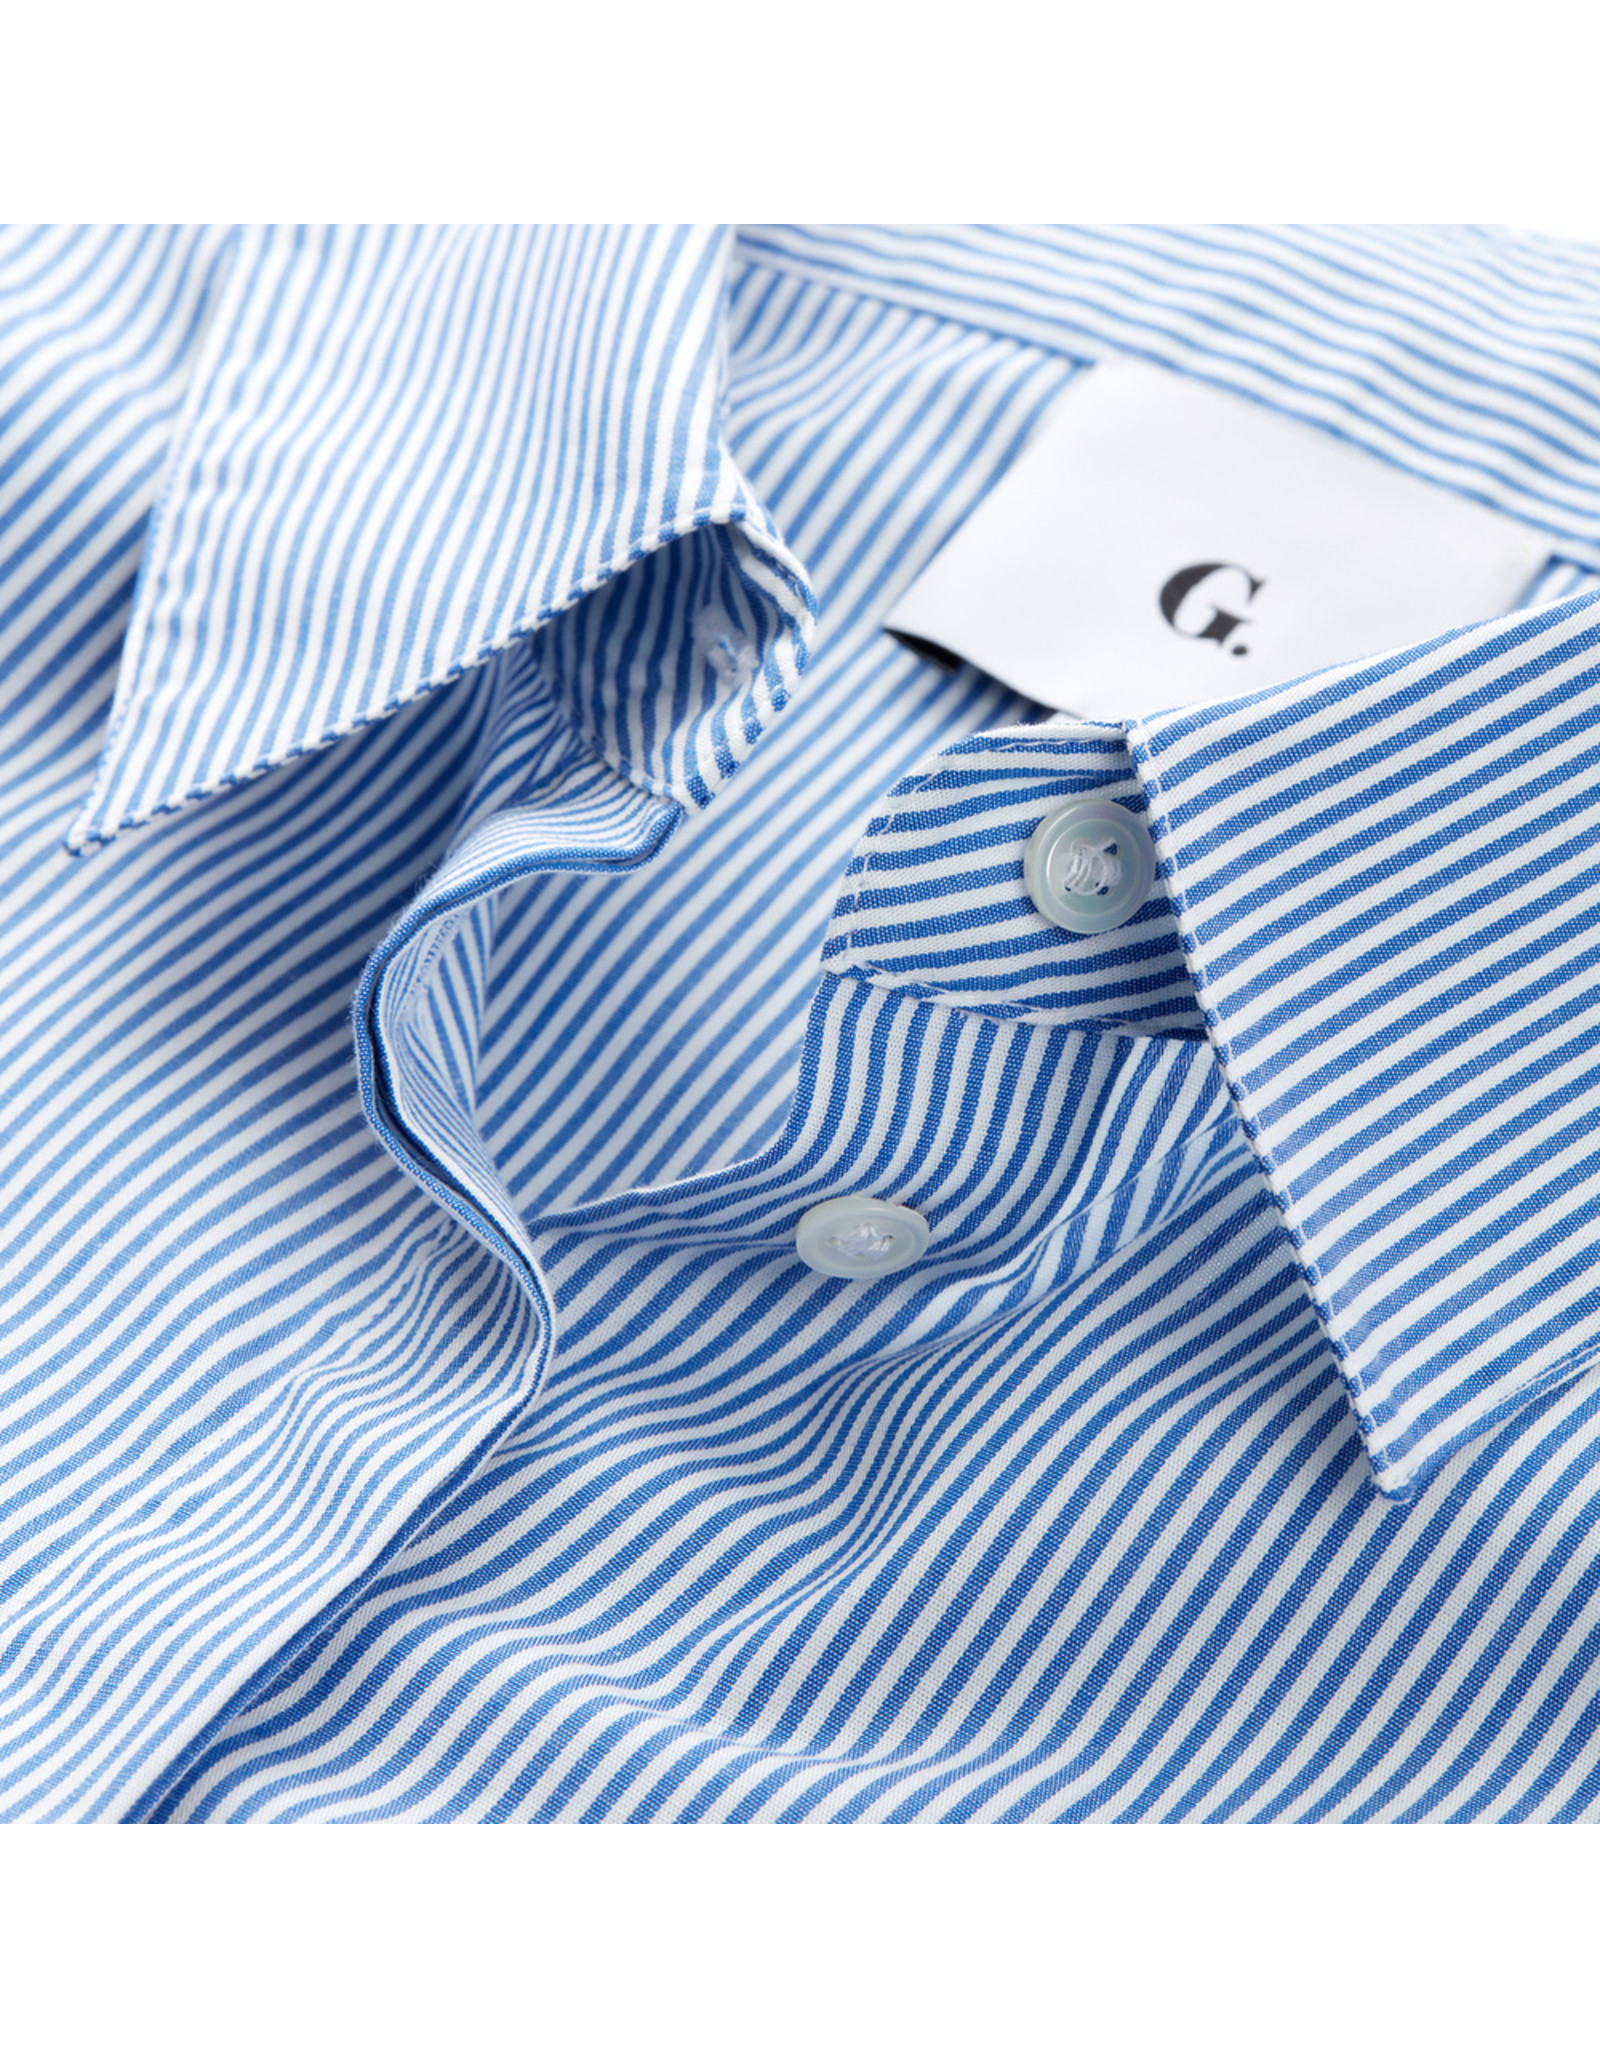 G. Label G. Label Nicole Puff-Sleeve Button-Down with Collar (Size: 8, Color: Blue/White Stripe)